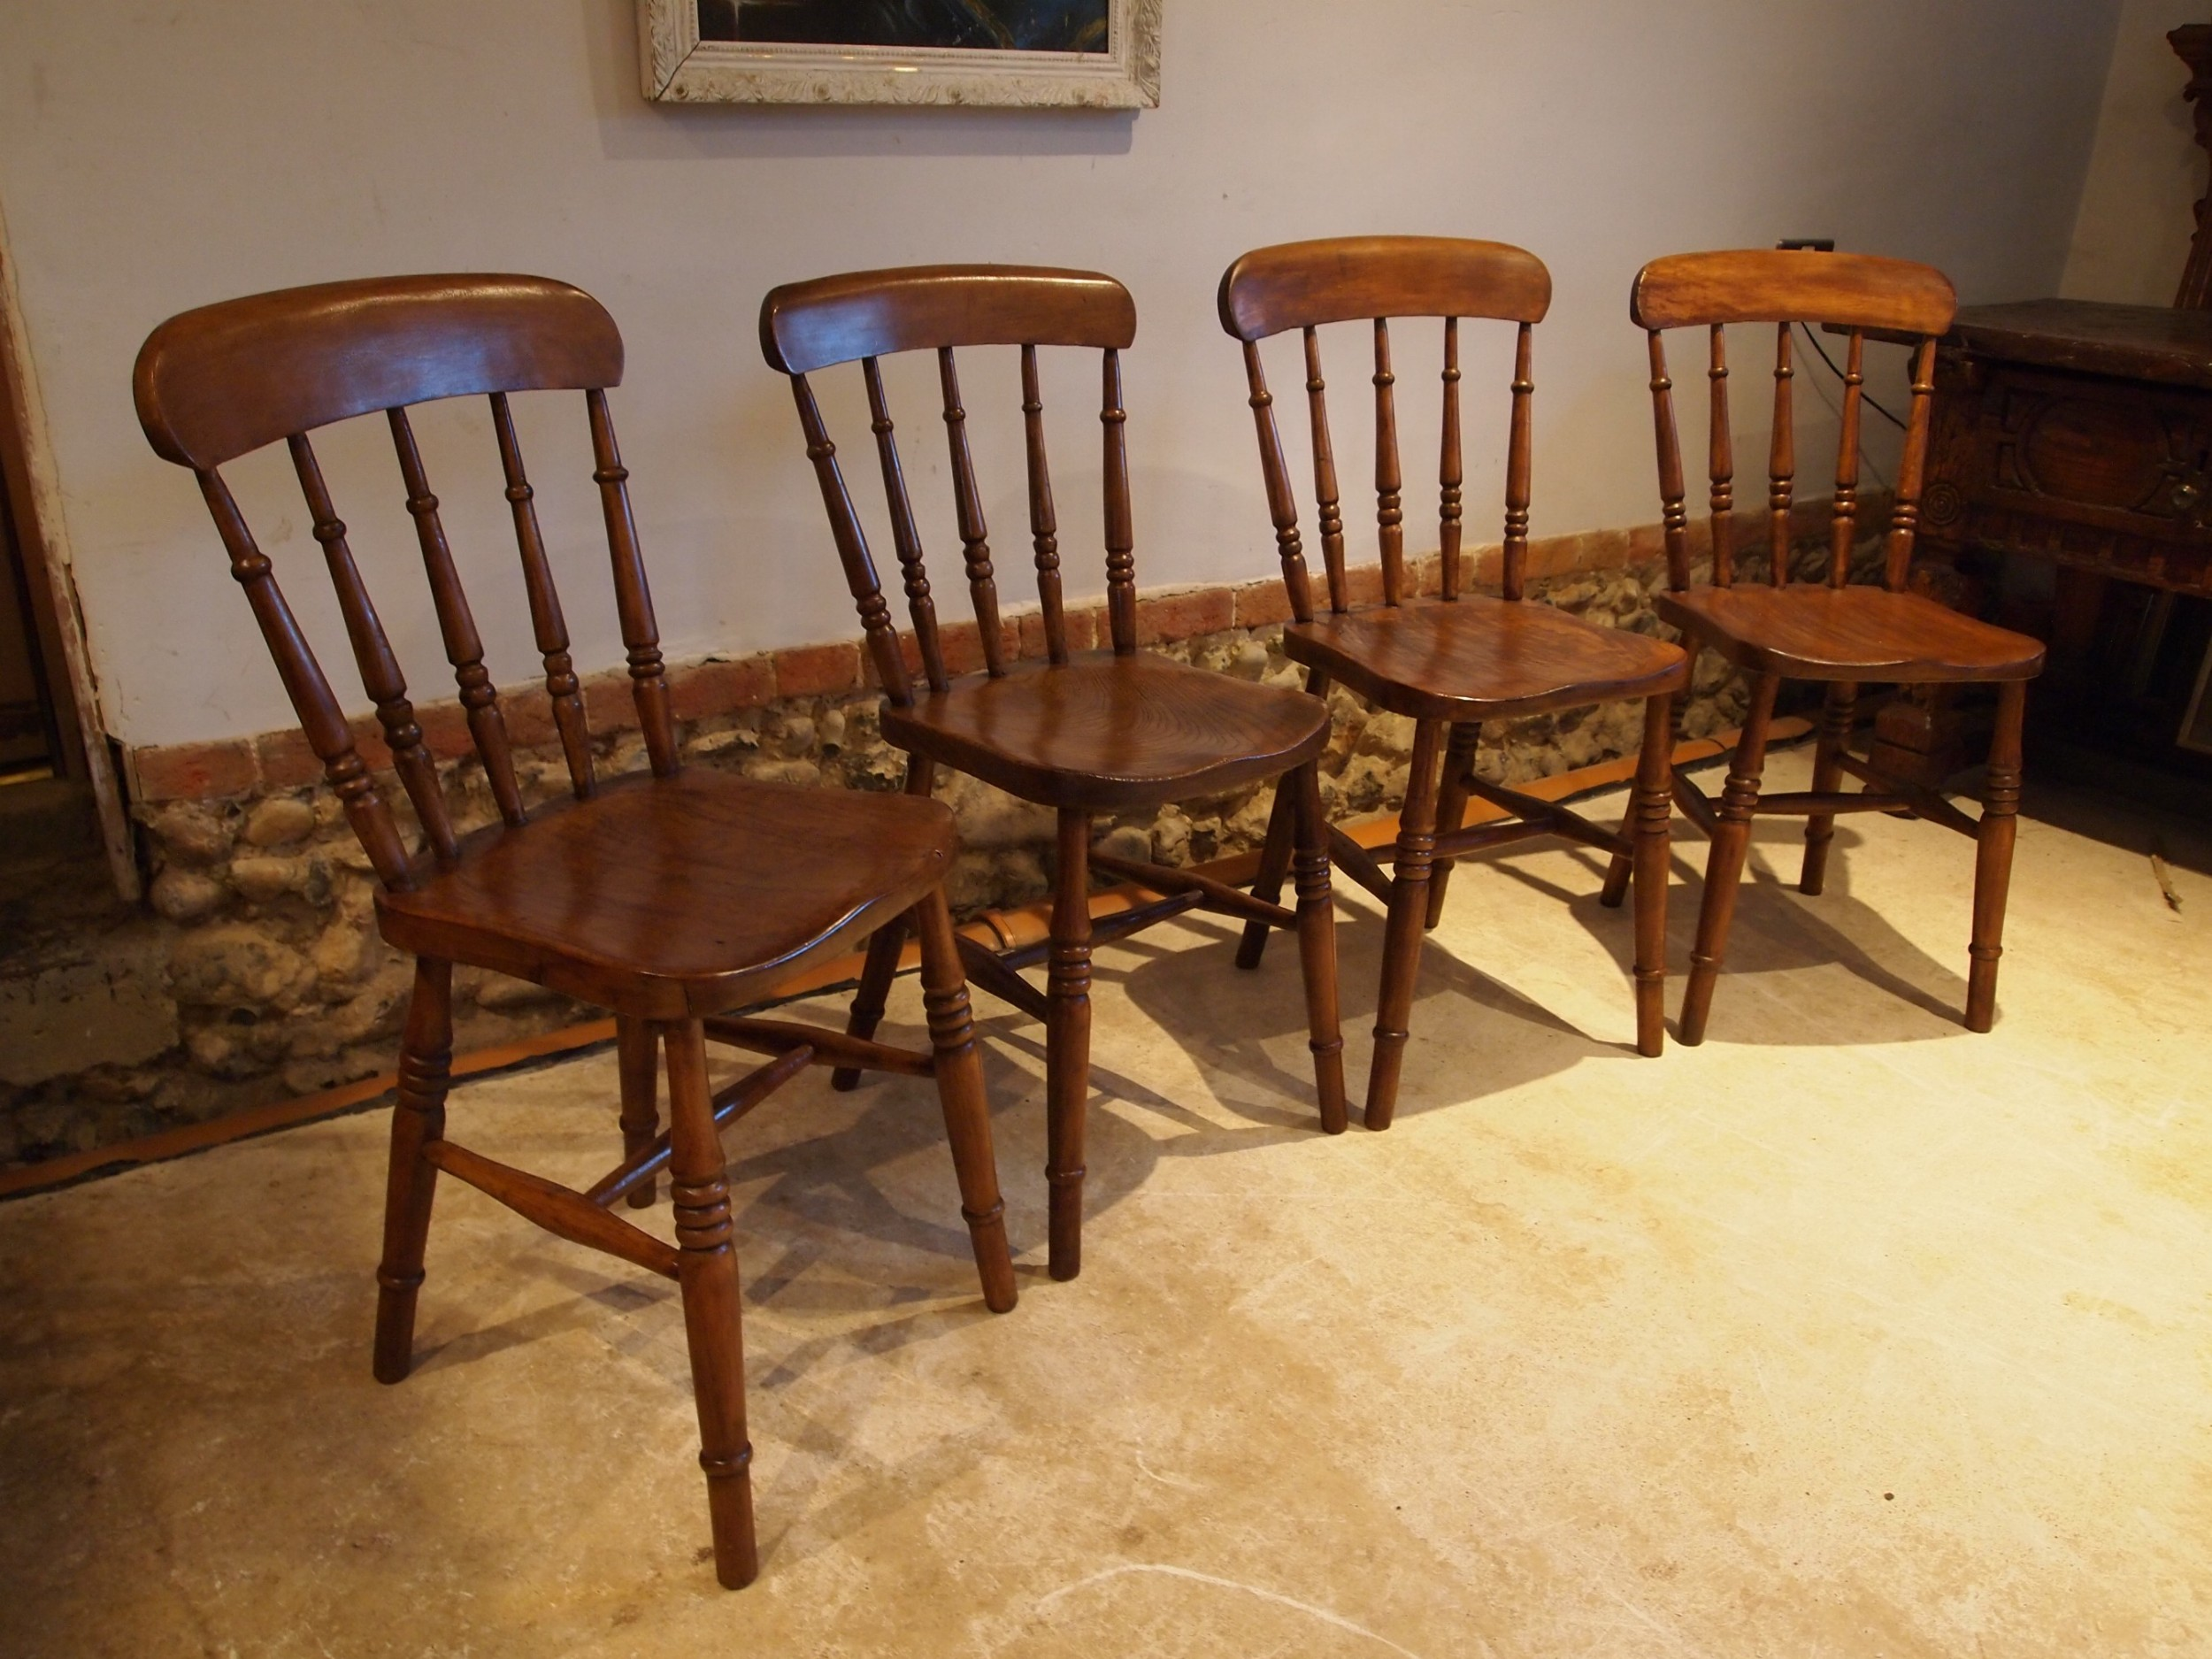 chairs set of 4 victorian windsor kitchen chairs c1880